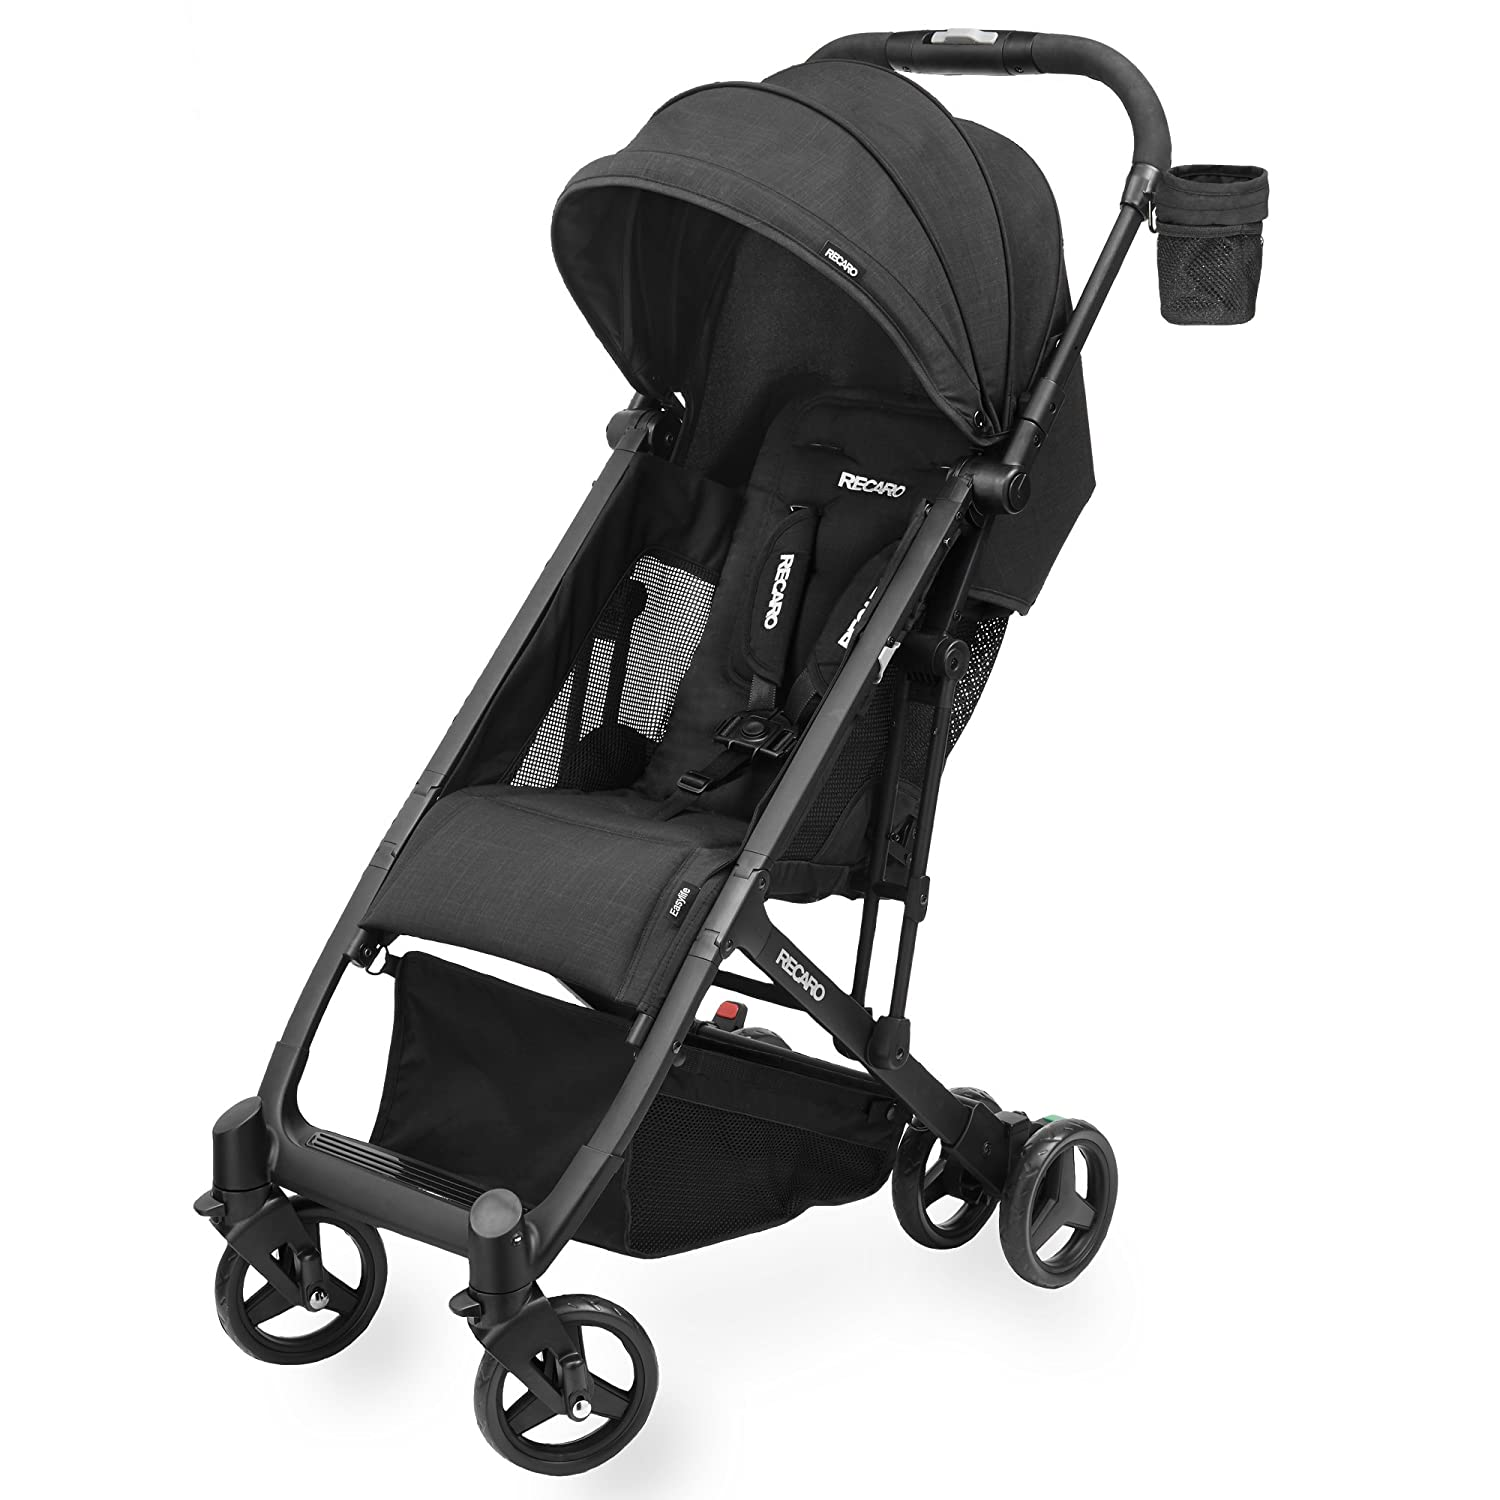 Umbrella Type Collapsible Stroller | Double Jogging Stroller